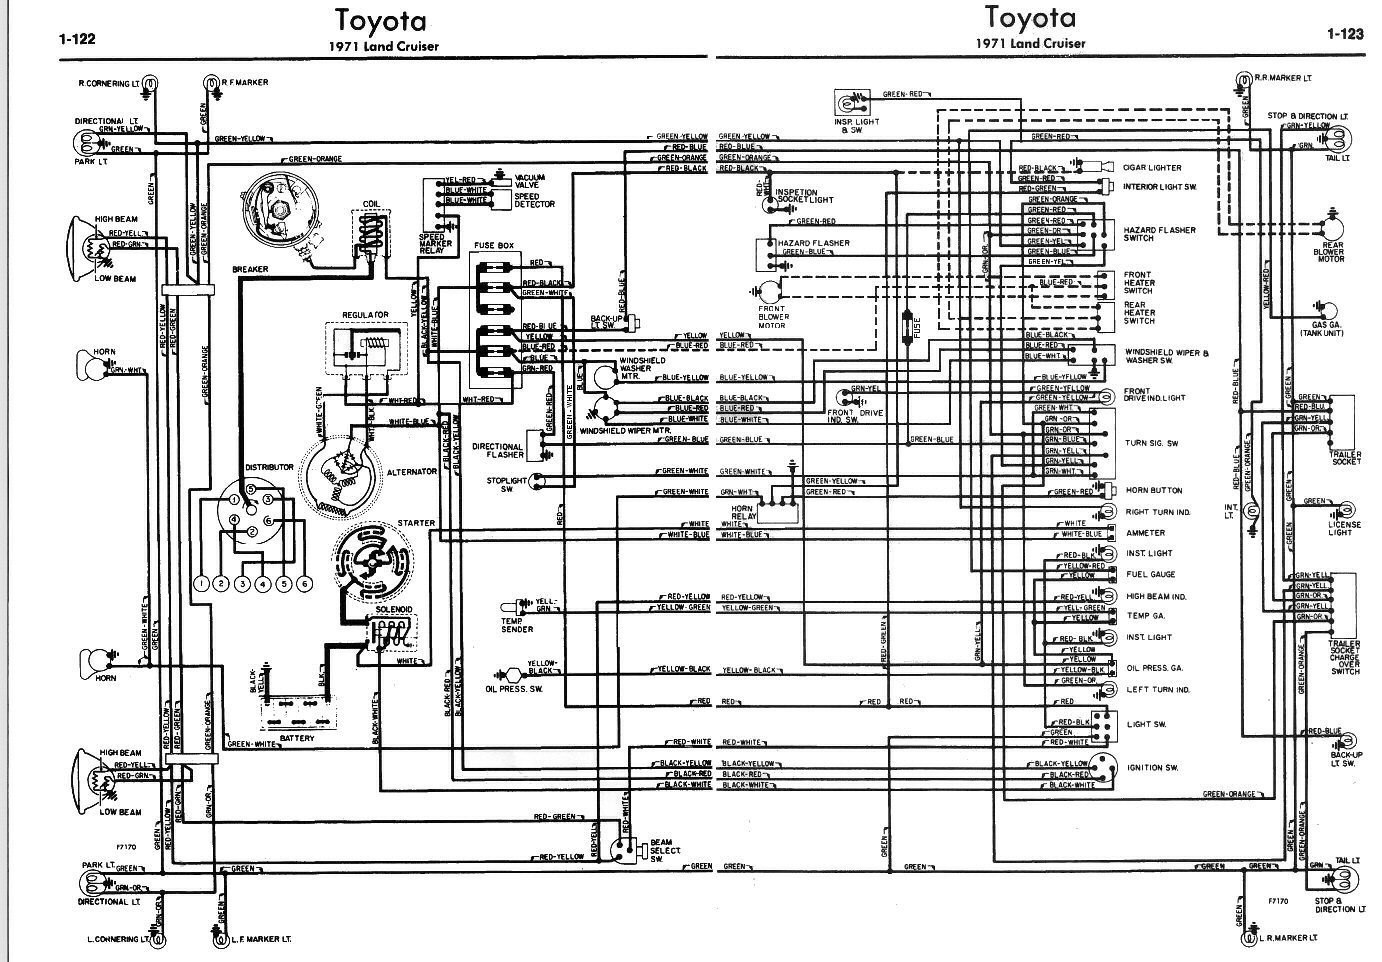 Centech Wiring Harness Fj40 27 Diagram Images Painless Diagrams 1971resize6652c463 Cen Tech